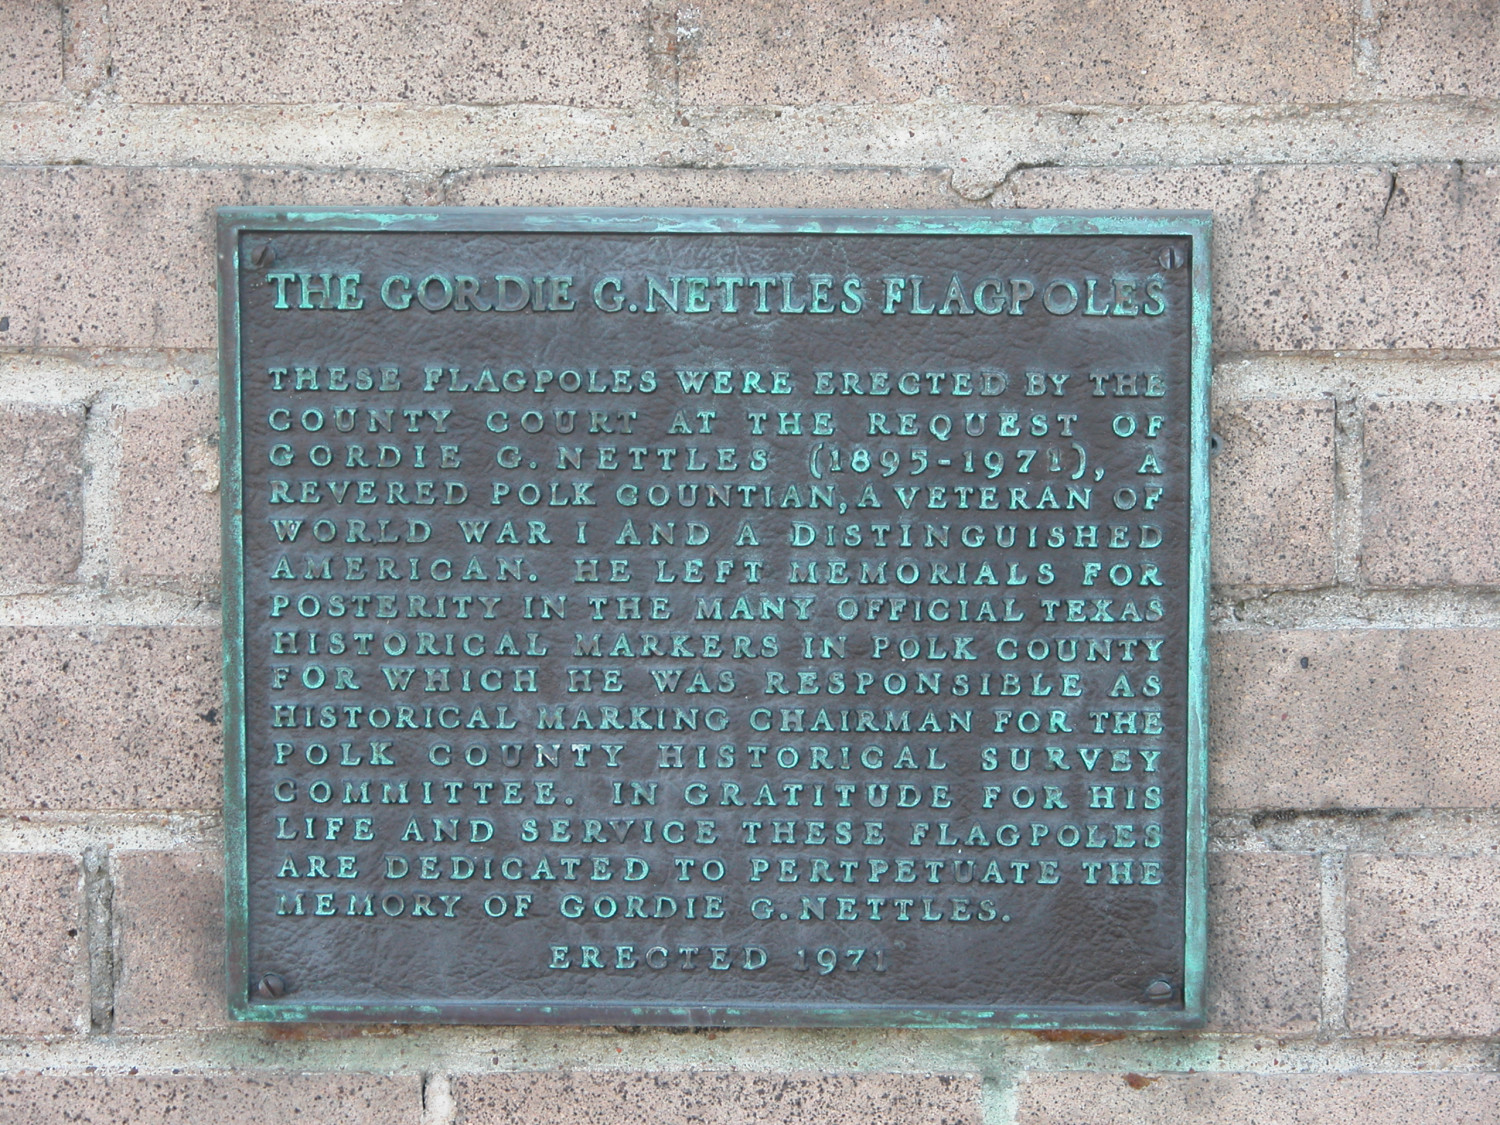 Historic Plaque, Polk County Courthouse Flagpoles.                                                                                                      [Sequence #]: 1 of 1